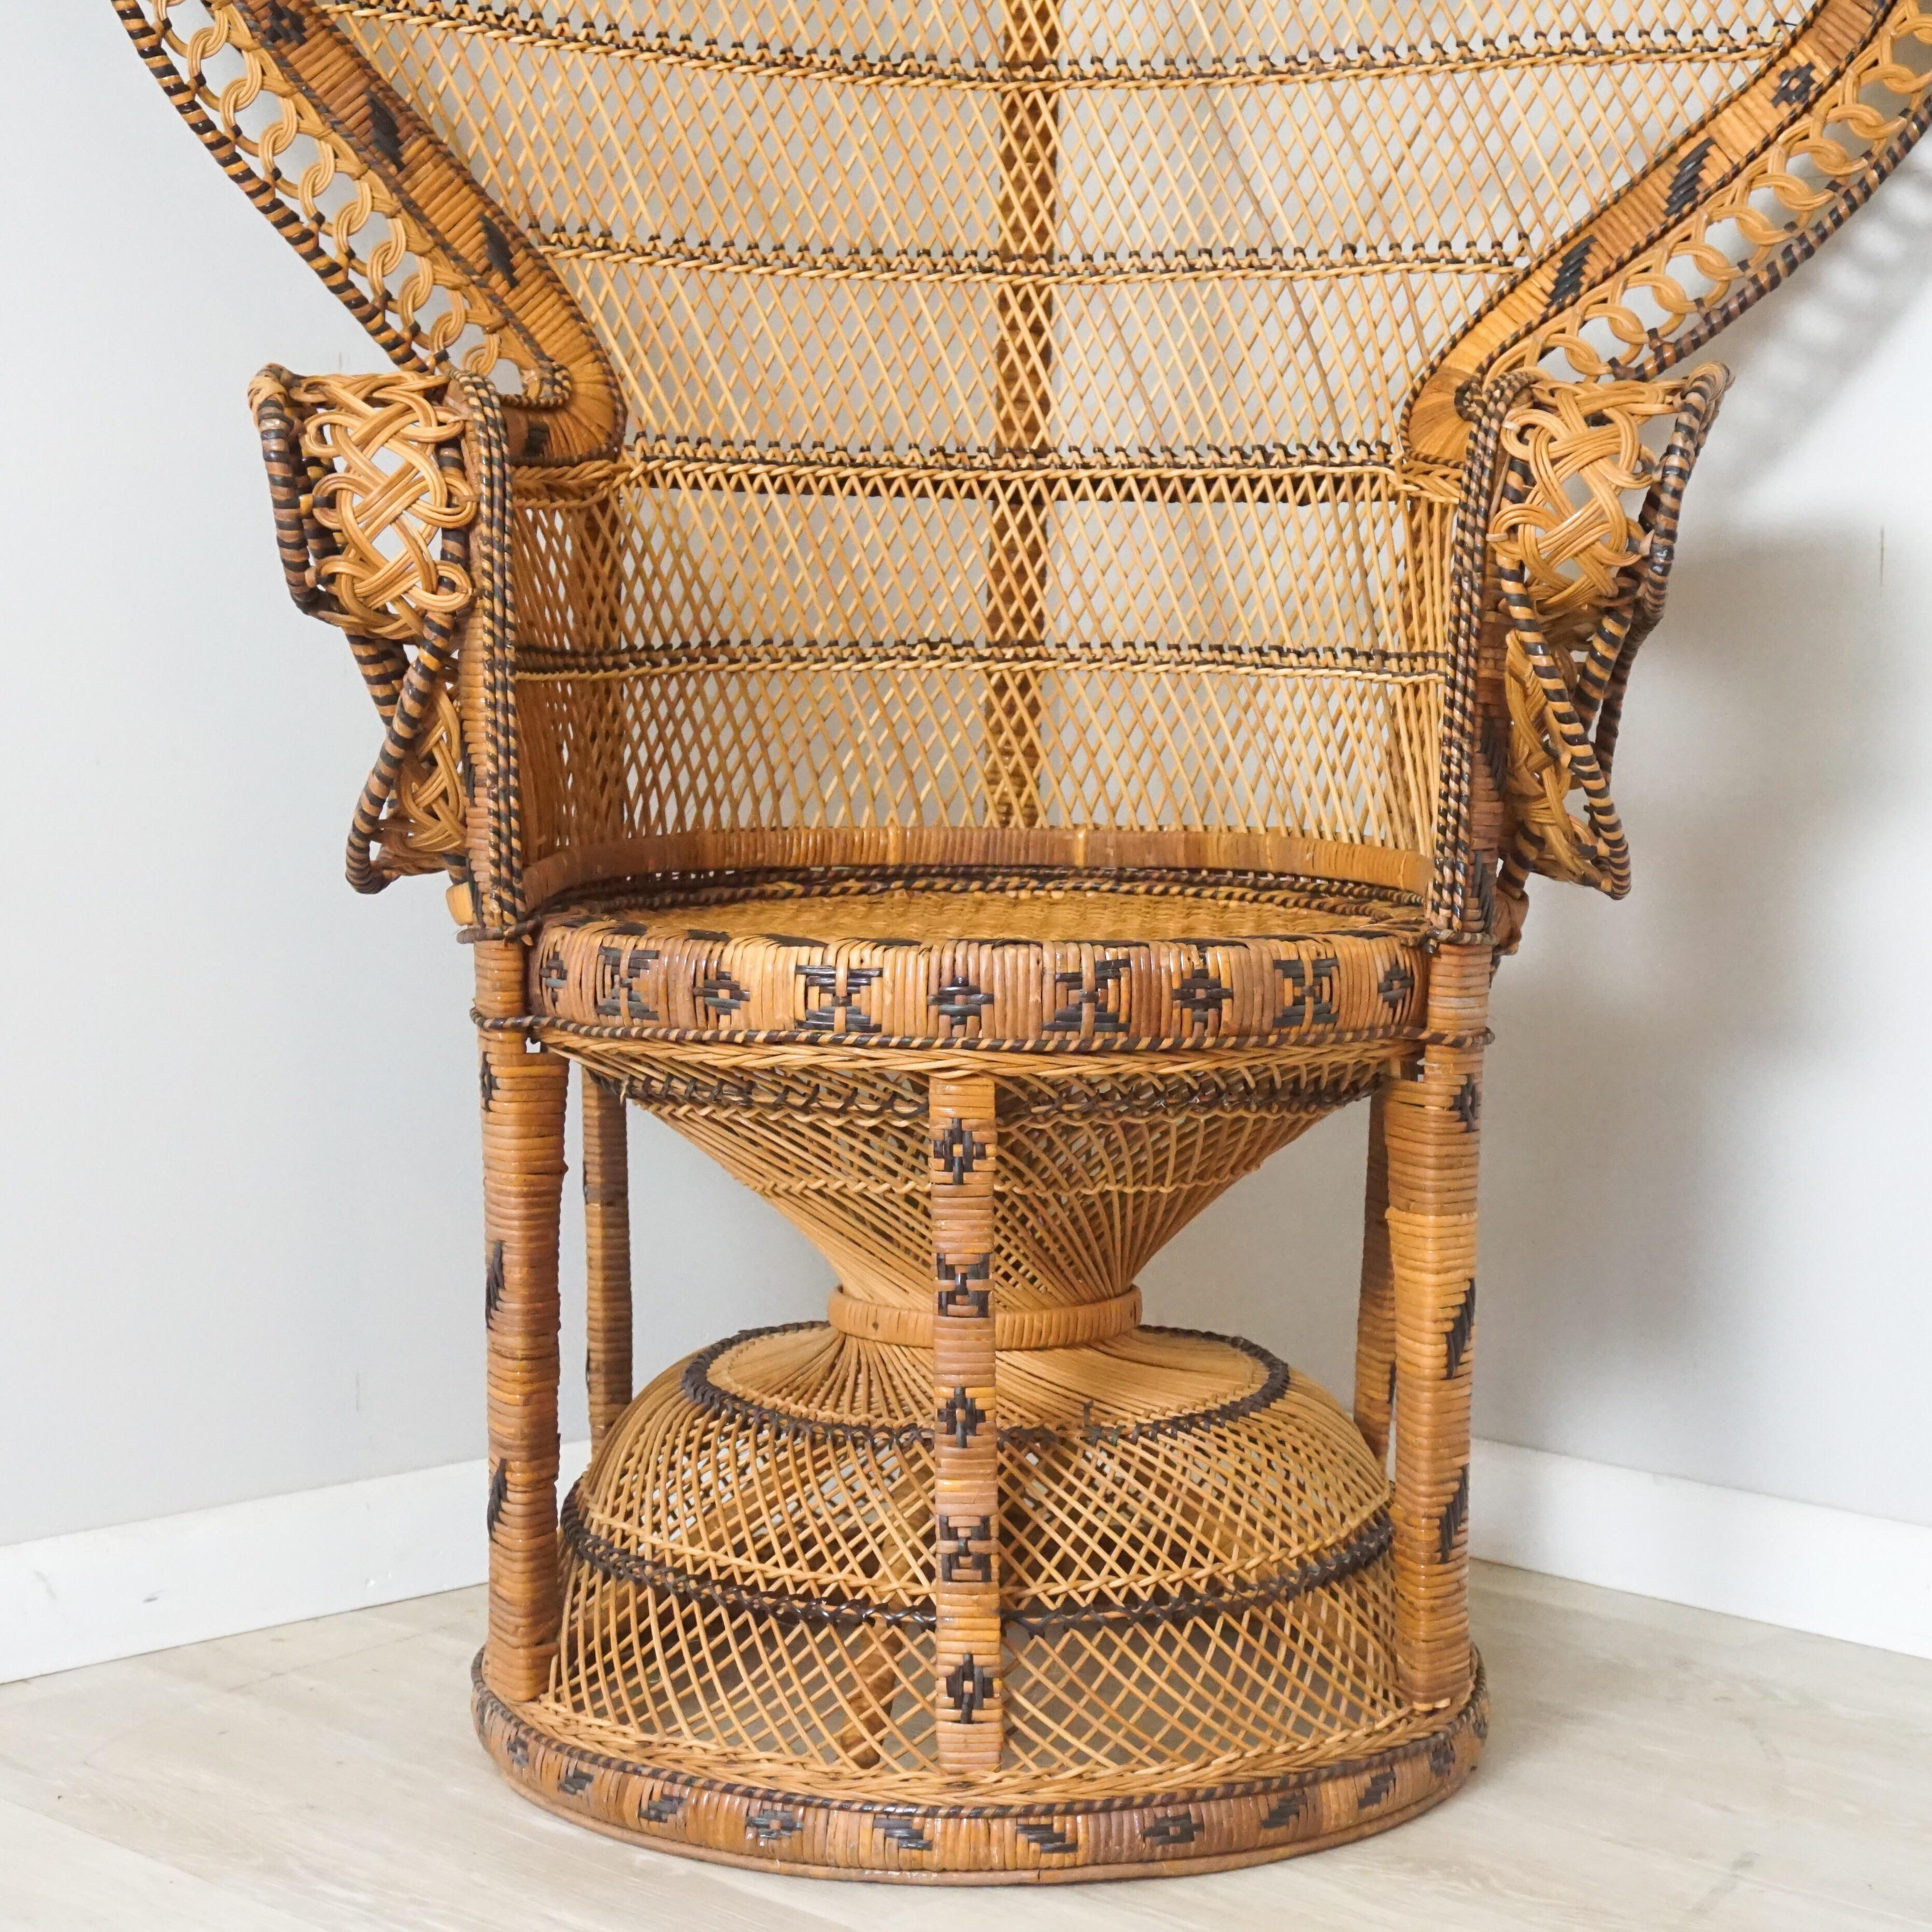 Vintage Large Rattan Emmanuel Style Peacock Chair   Chairish 1970s Vintage Large Rattan Emmanuel Style Peacock Chair For Sale   Image 5  of 11